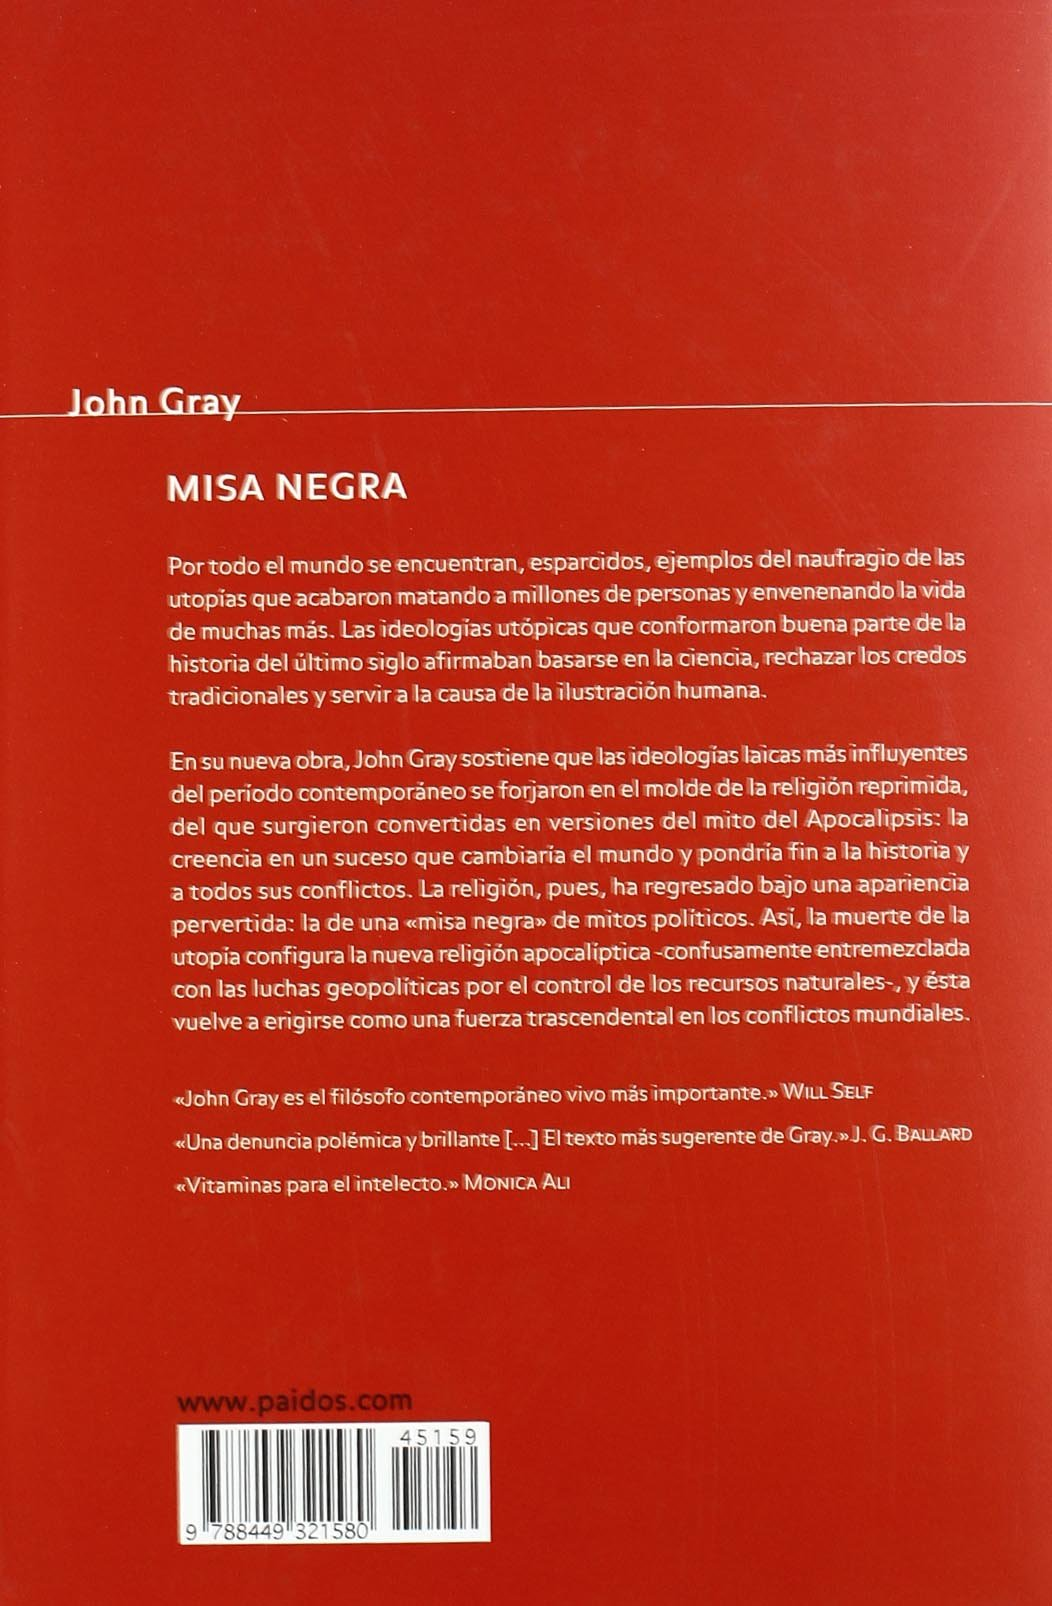 Misa negra / Black Mass: La religion apocaliptica y la muerte de la utopia / The Apocalyptic Religion and the Utopia of Death (Paidos Estado Y Sociedad ...